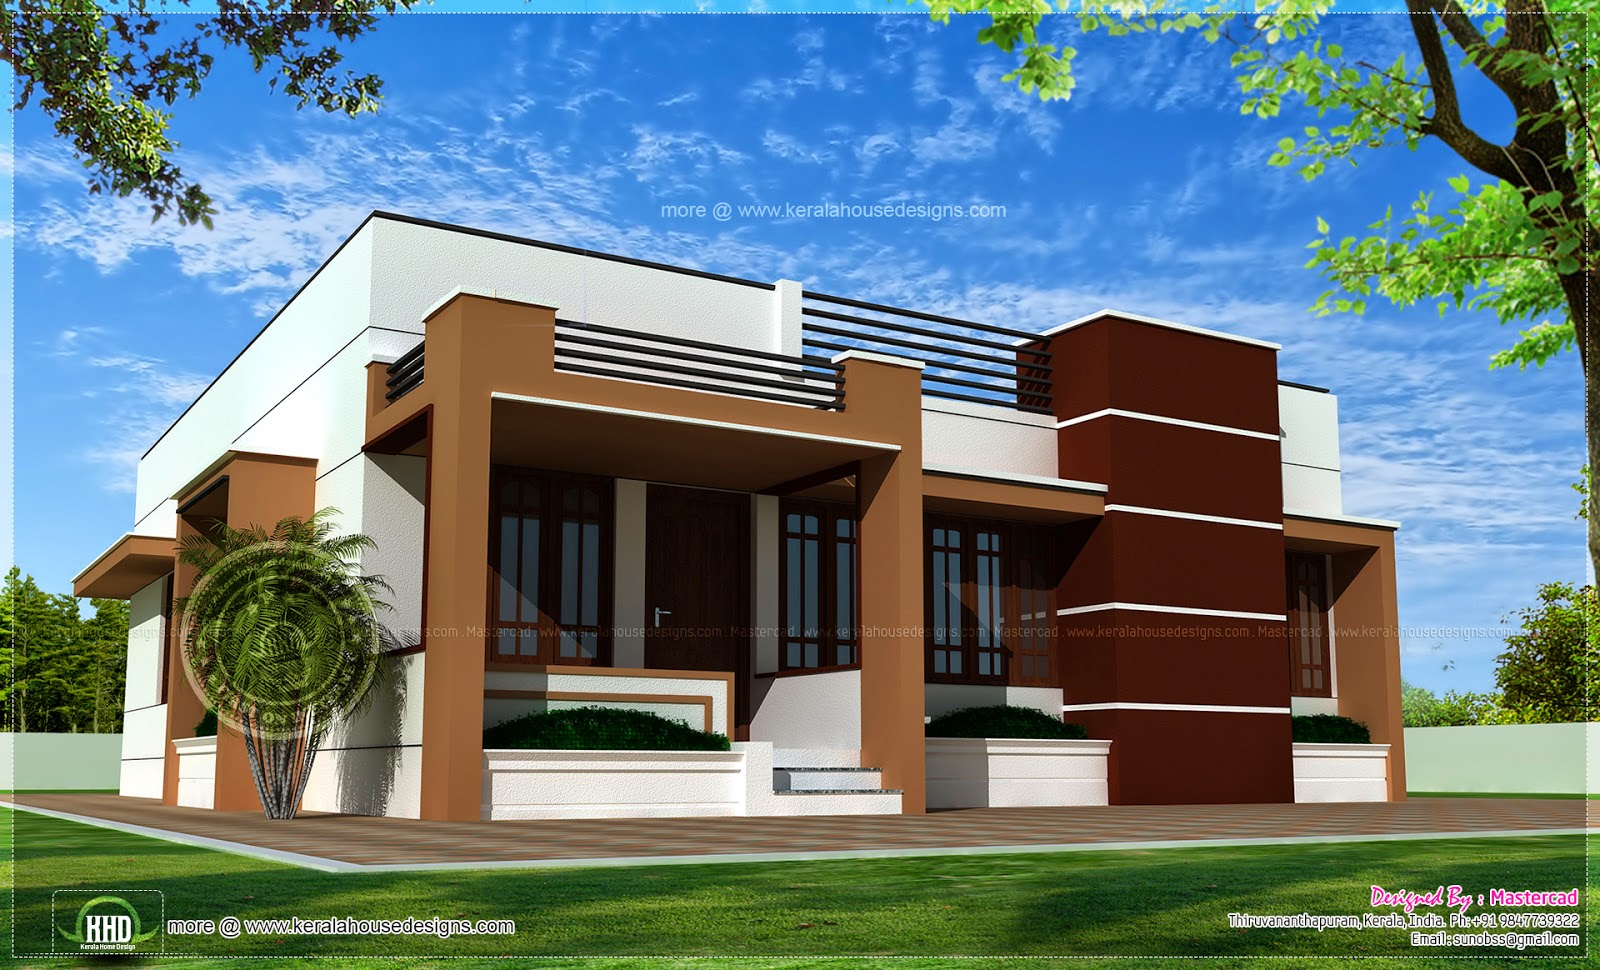 One story contemporary house modern 2 story house plans for 1 1 2 story home plans